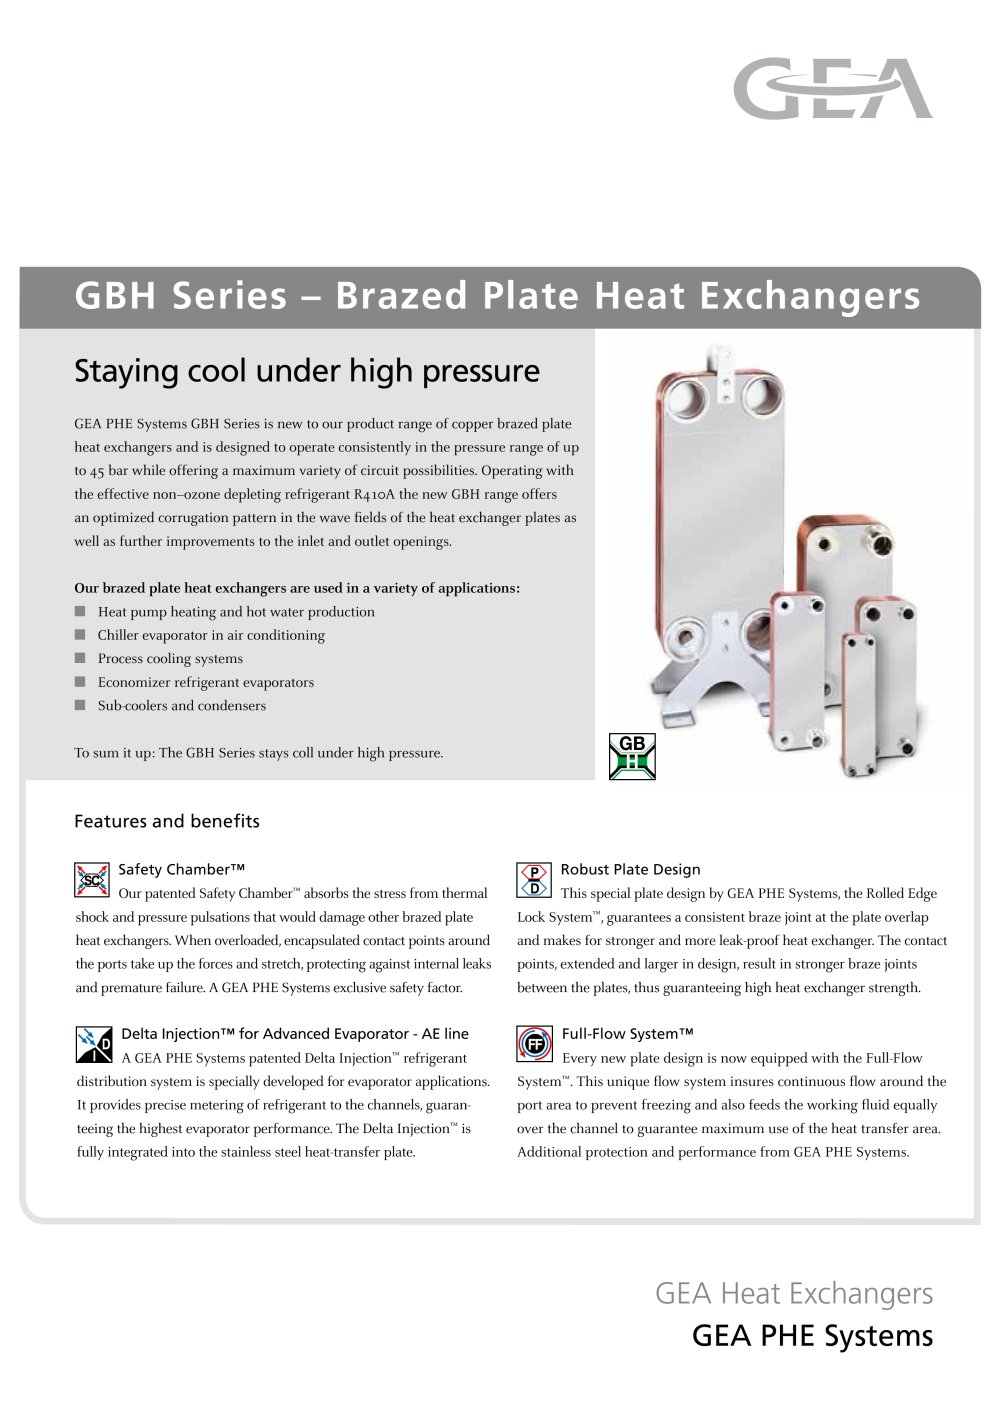 GBH Series - Brazed Plate Heat Exchangers - 2 Pages